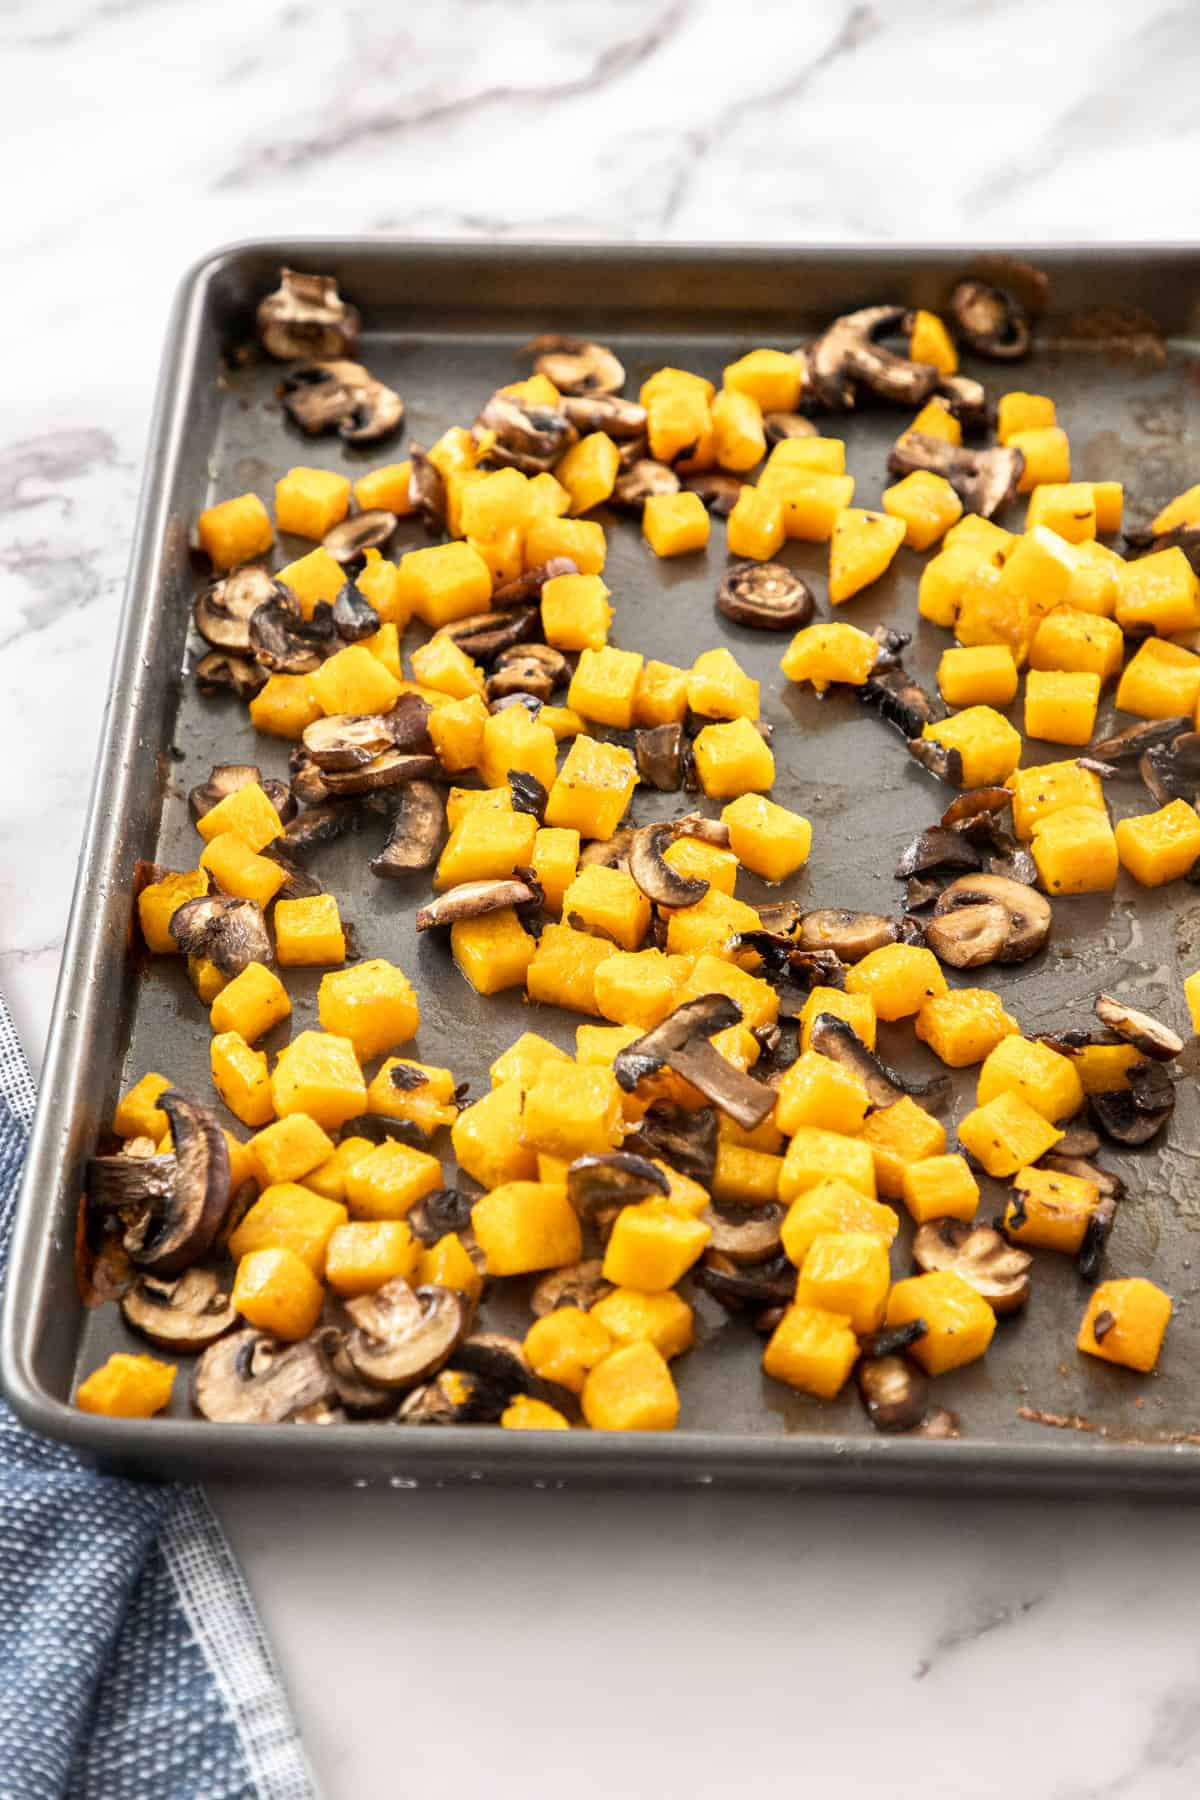 Roasted mushrooms and butternut squash on a baking sheet